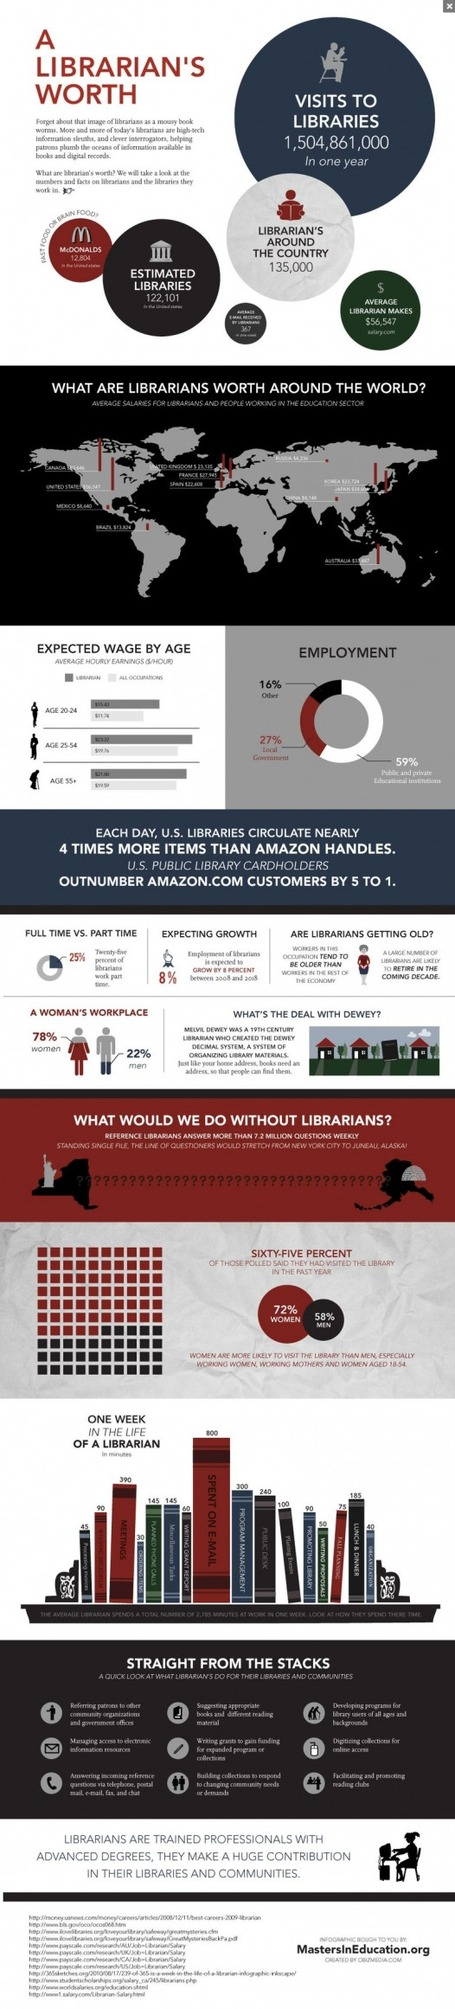 What are librarians worth around the world | The Future Librarian | Scoop.it